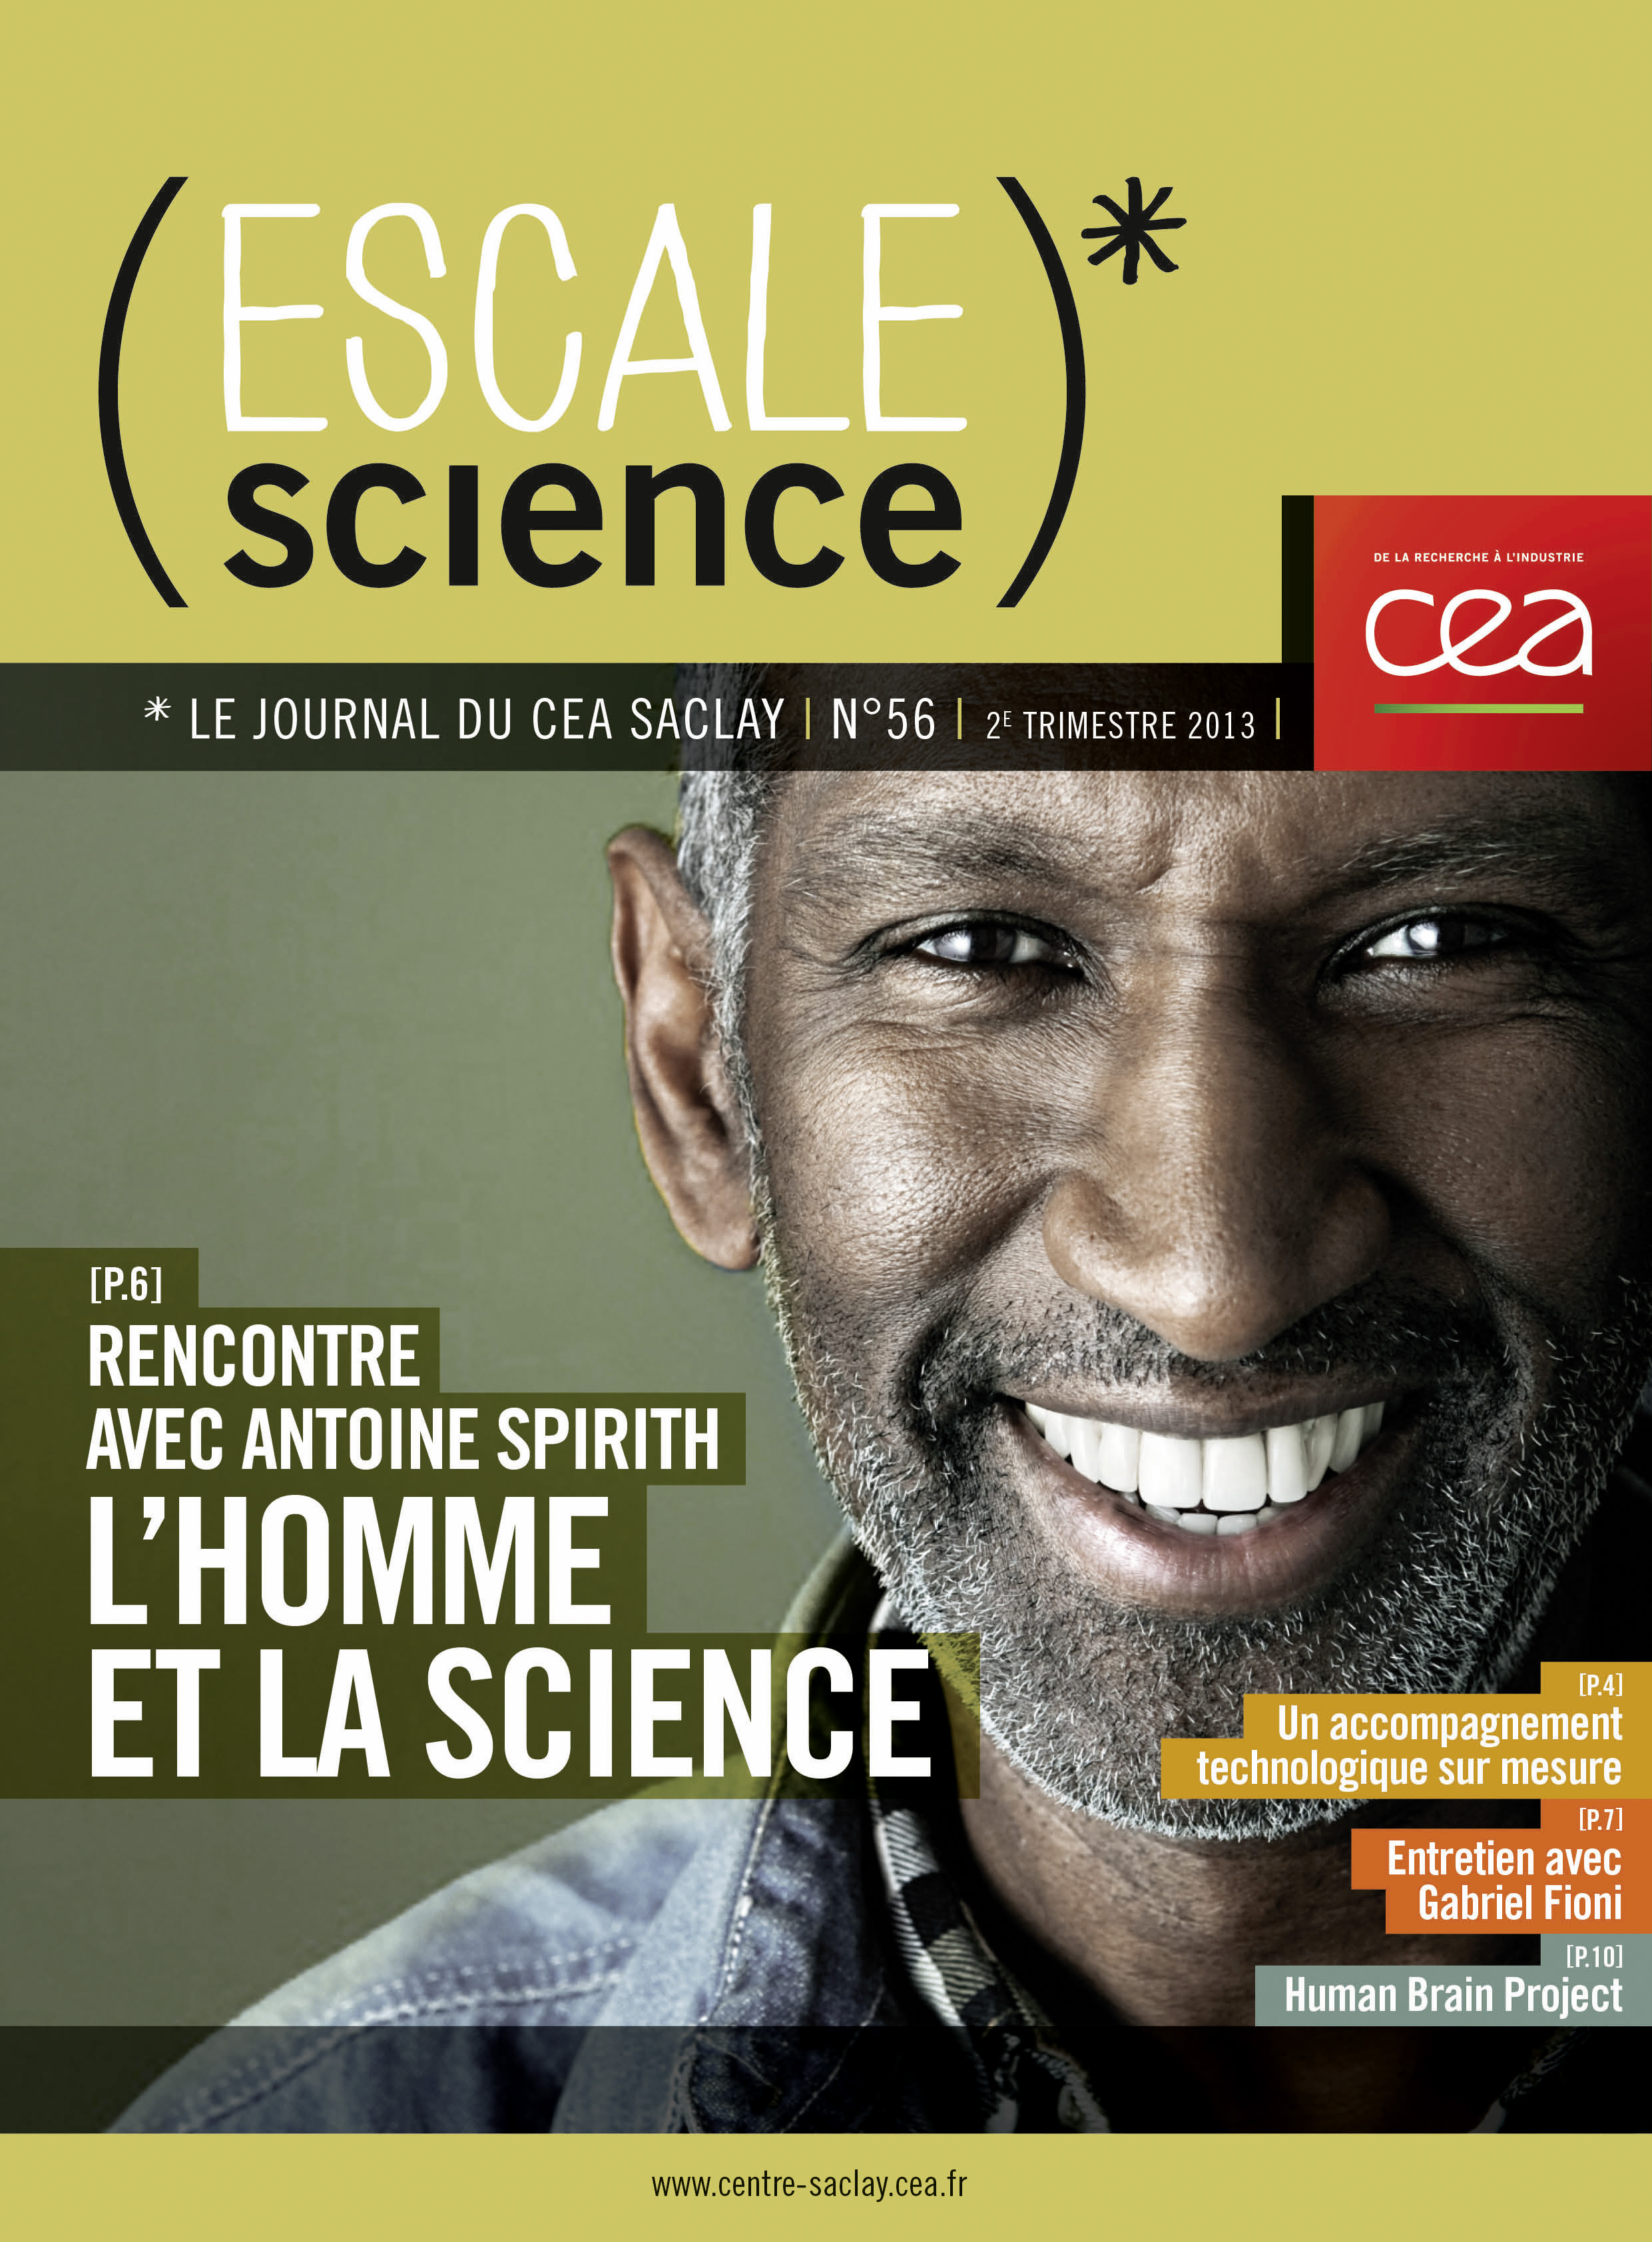 ESCALE SCIENCE